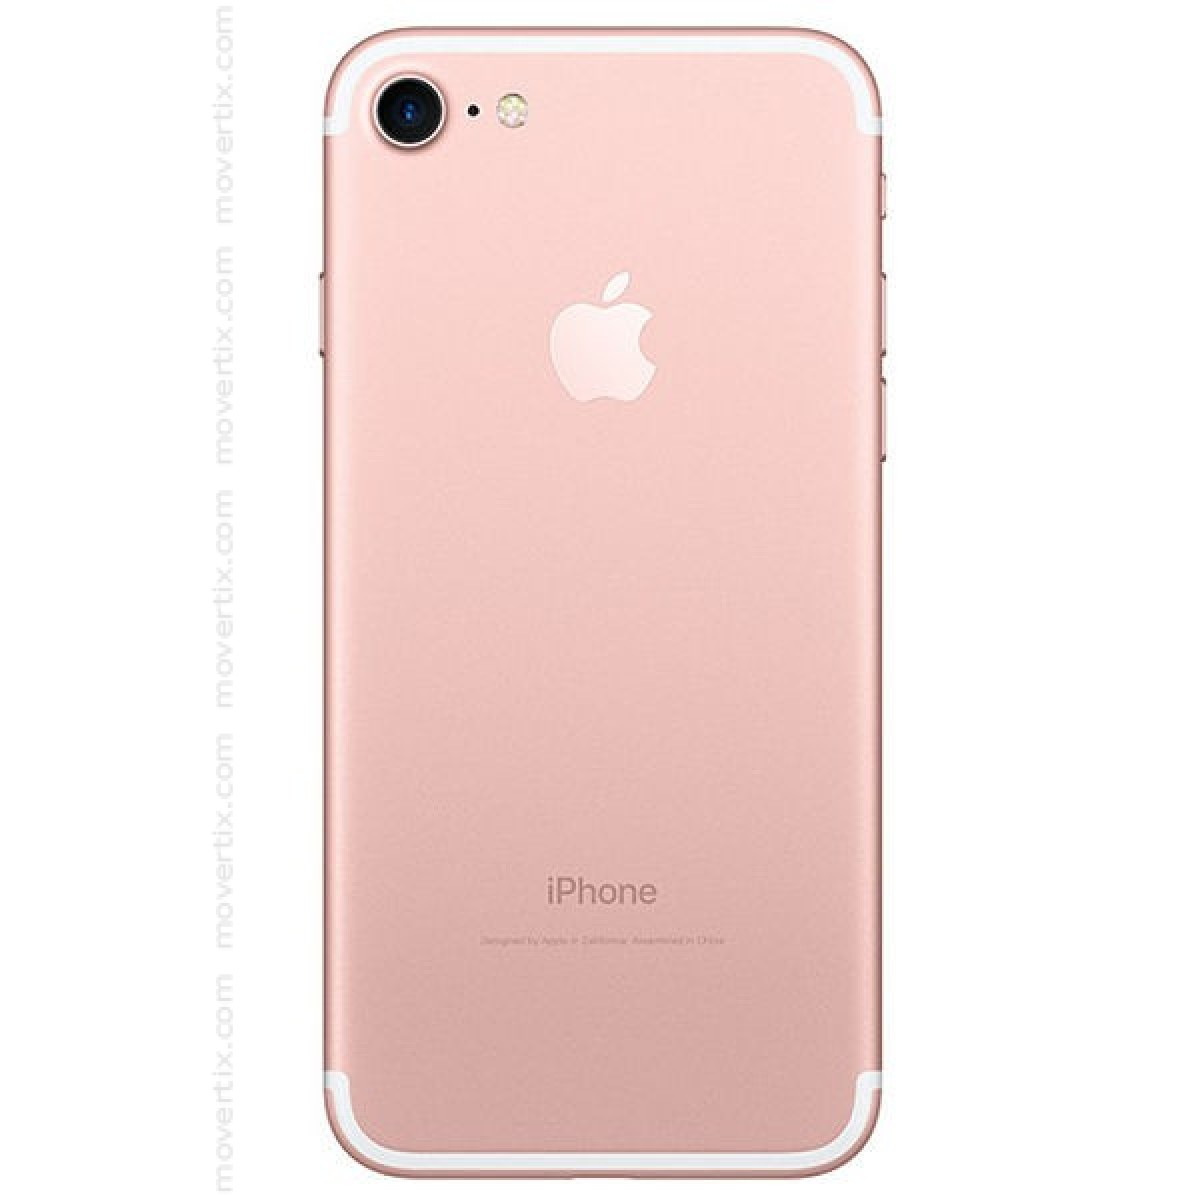 apple iphone 7 de 256gb en oro rosa 0190198071286 movertix tienda de m viles libres. Black Bedroom Furniture Sets. Home Design Ideas